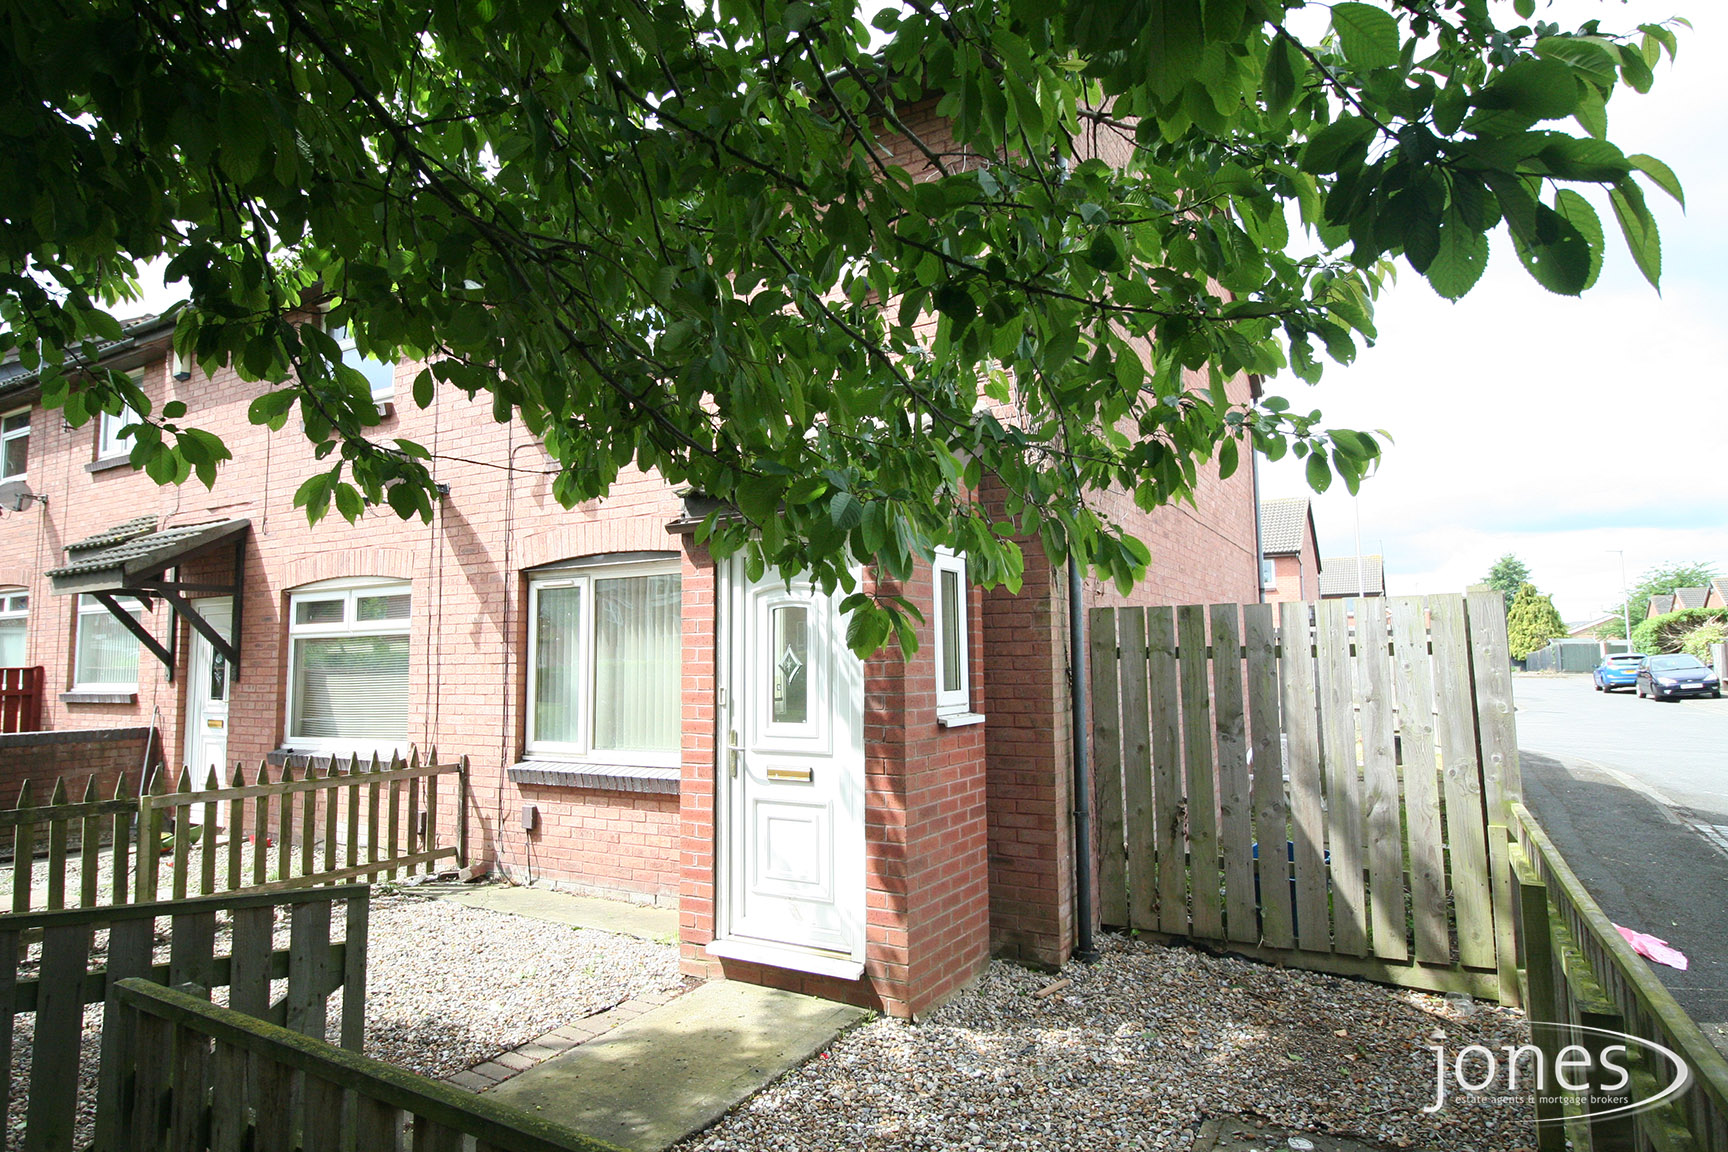 Home for Sale Let - Photo 01 Francis Walk,  Thornaby, TS17 6DL